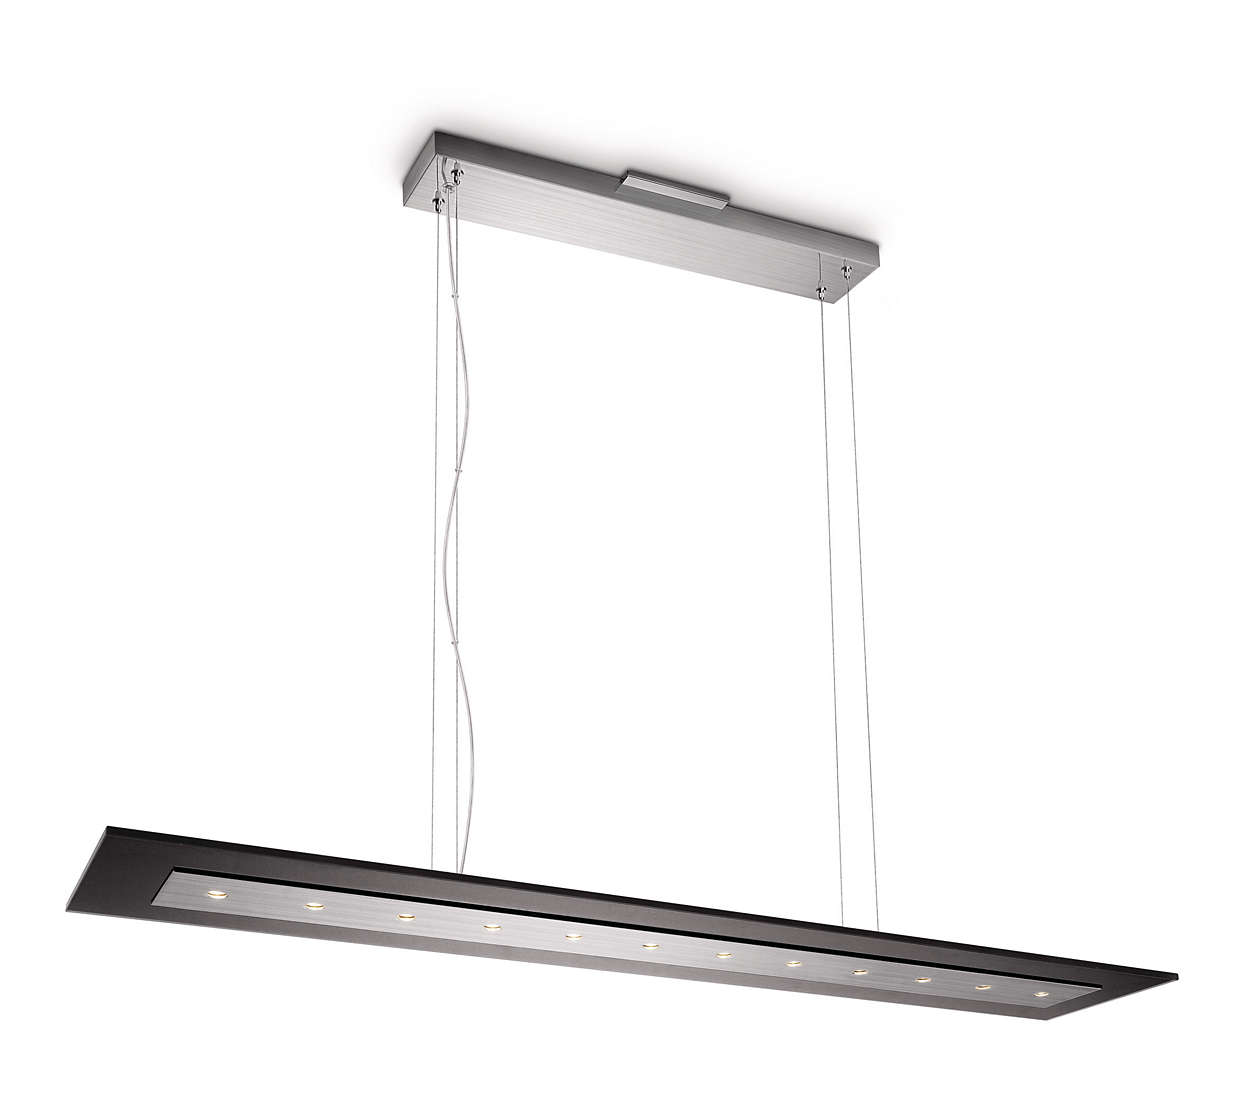 Ledino Matrix pendant light